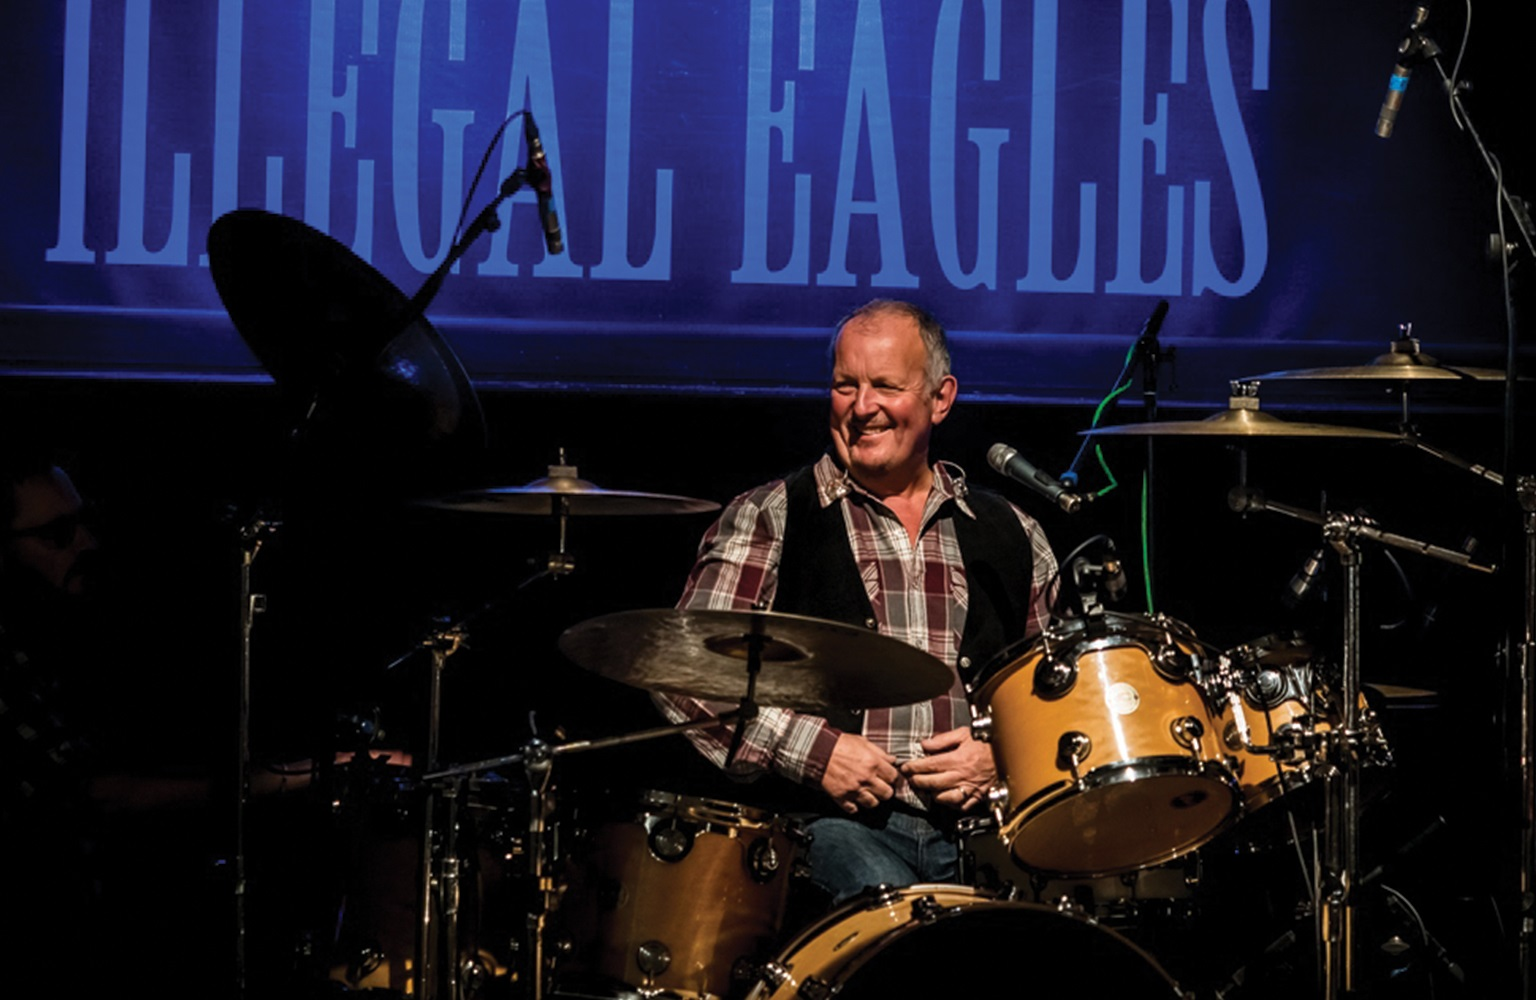 We interview founder and band member of the Illegal Eagles, Phil Aldridge, on the Eagles, why he started the band and living Life in the Fast Lane